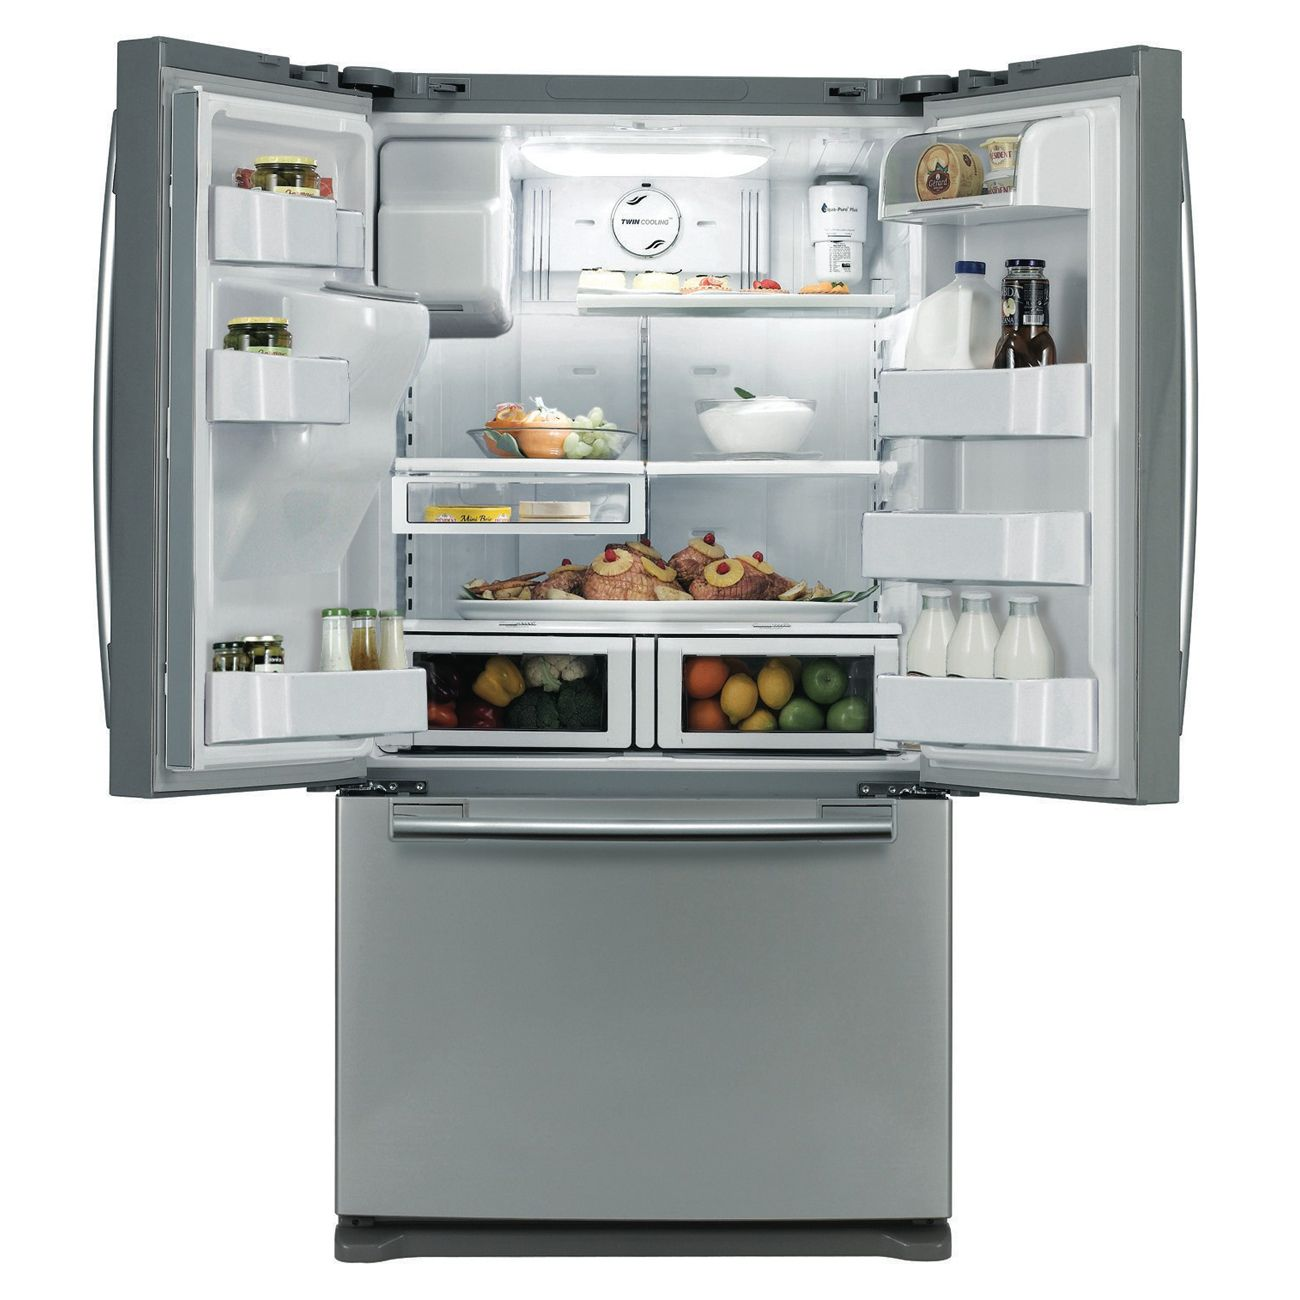 Samsung 26.0 cu. ft. Bottom-Freezer Refrigerator